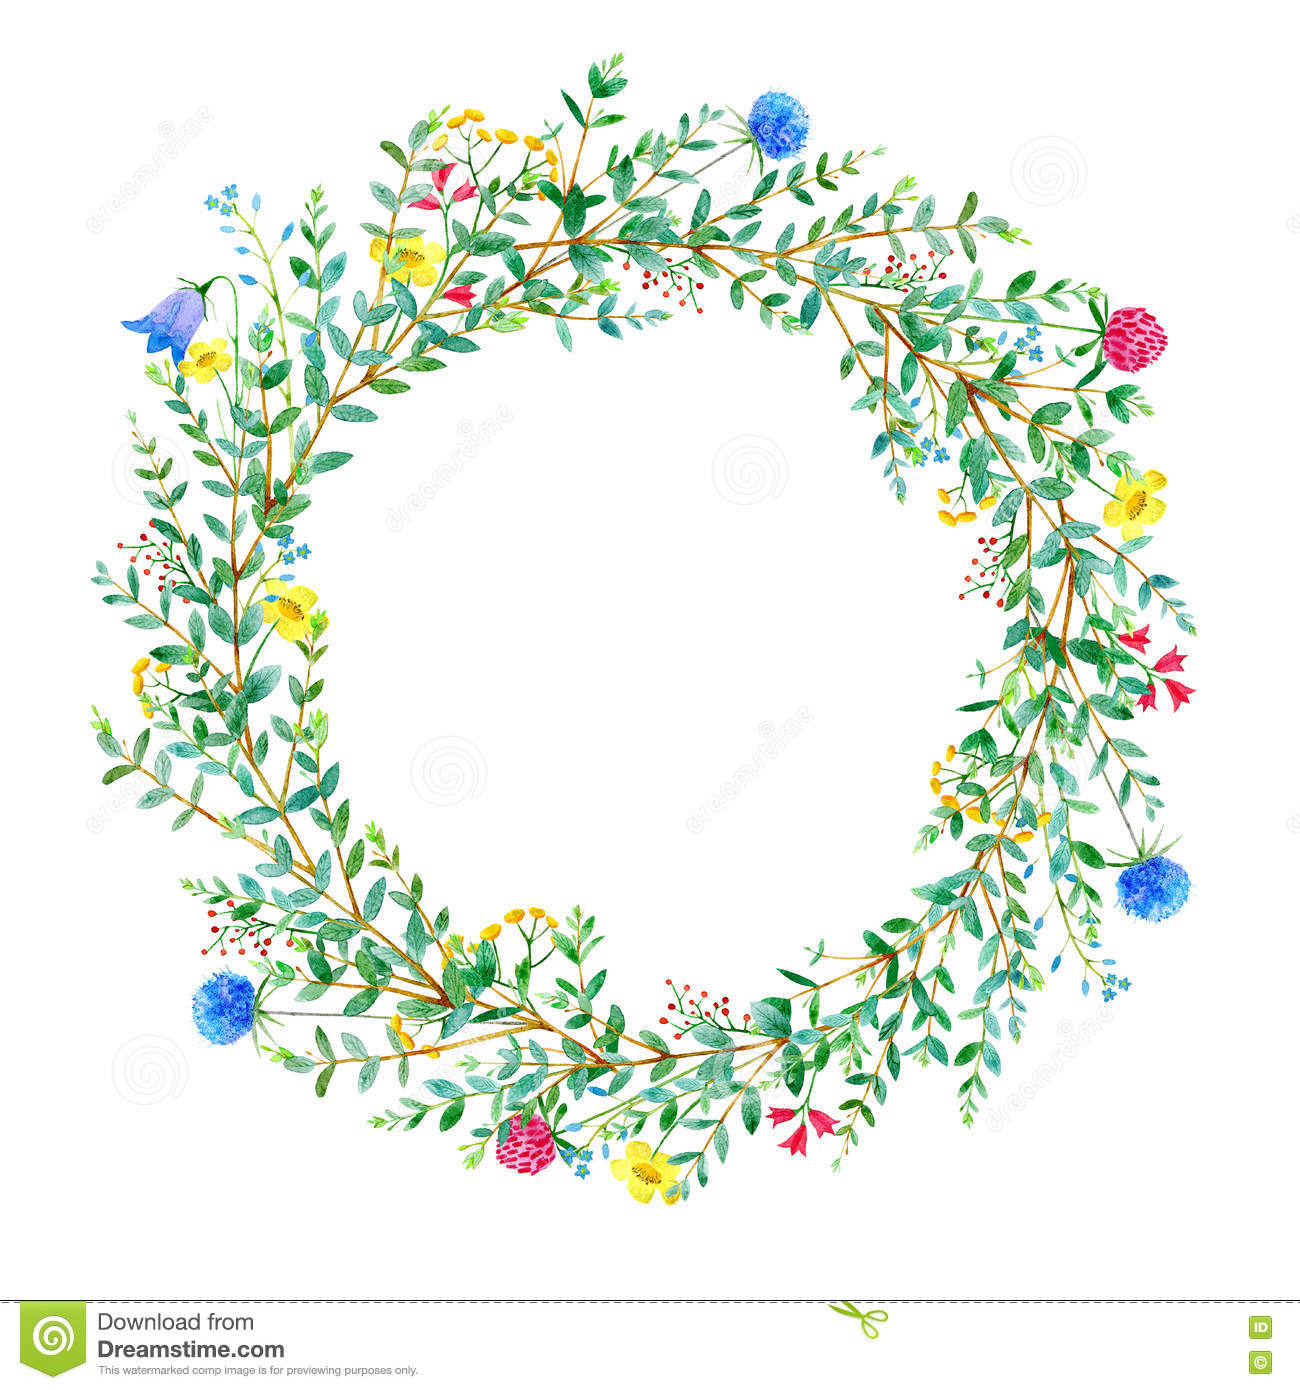 Garland With Meadow Herbs And Eucalyptus Branches. Stock.